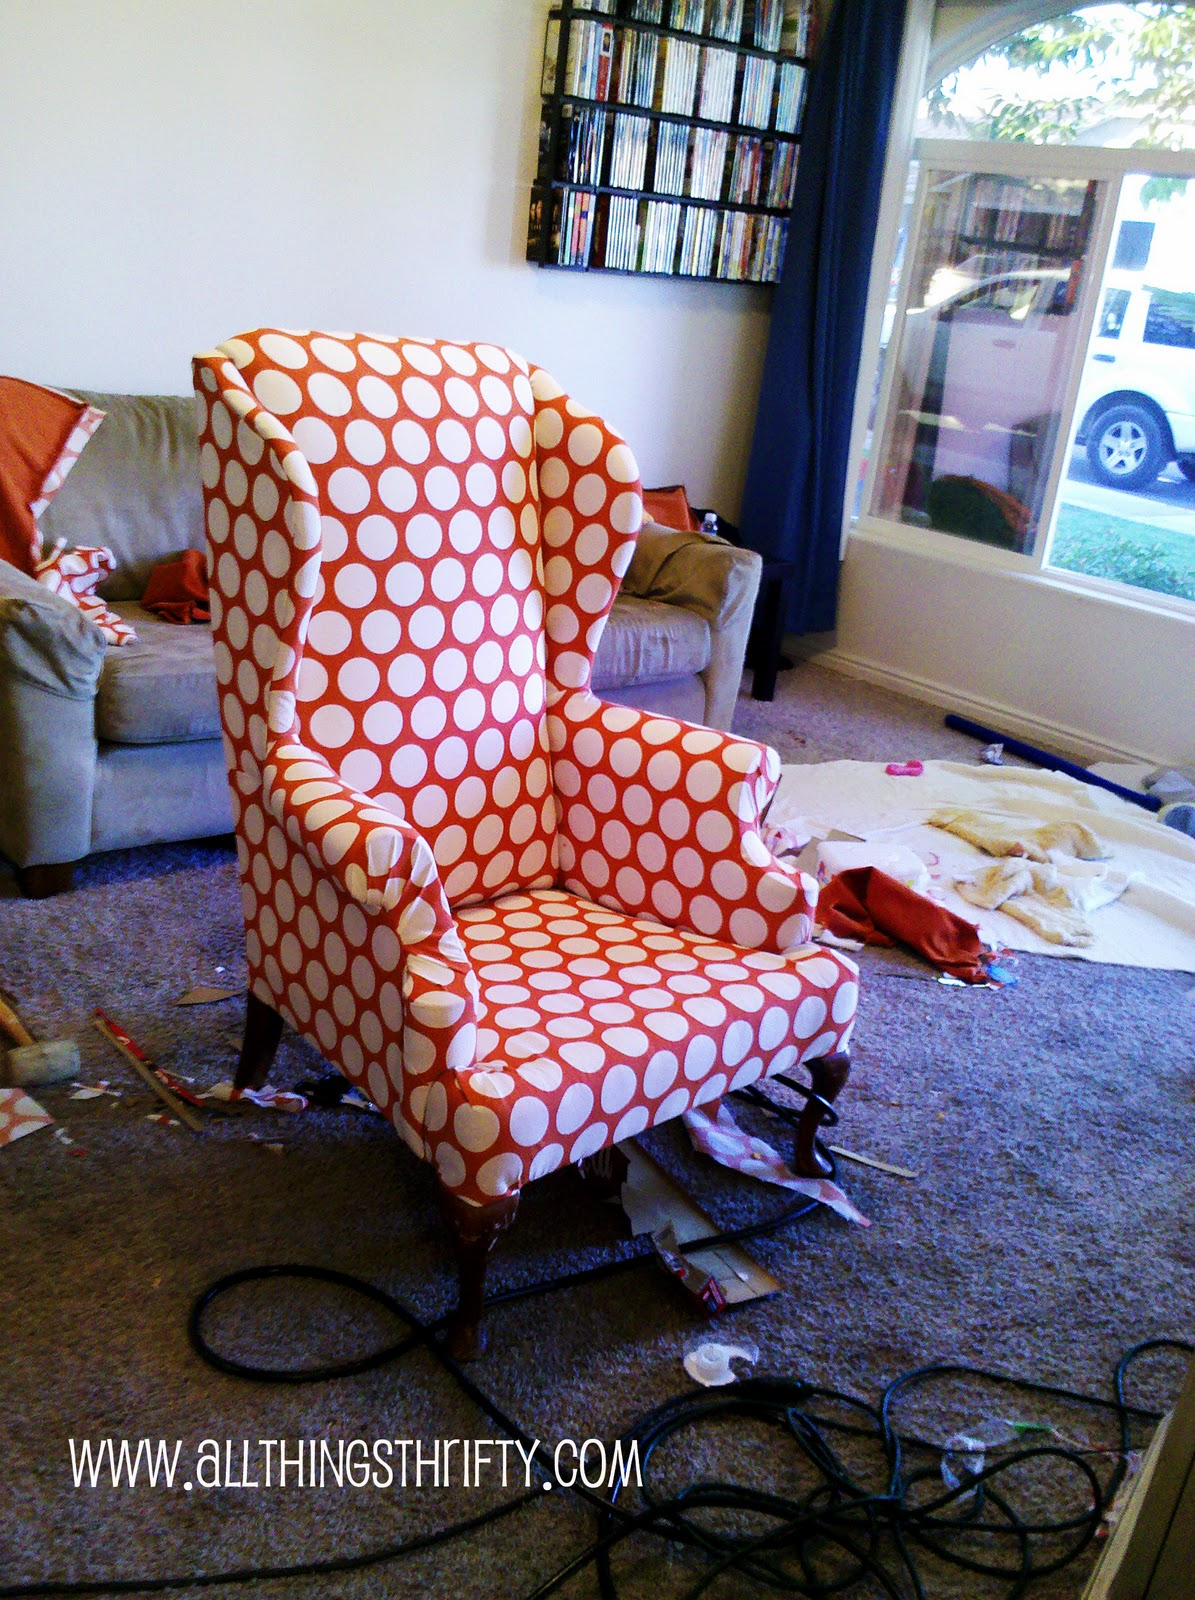 - Top 10 Upholstery Tips